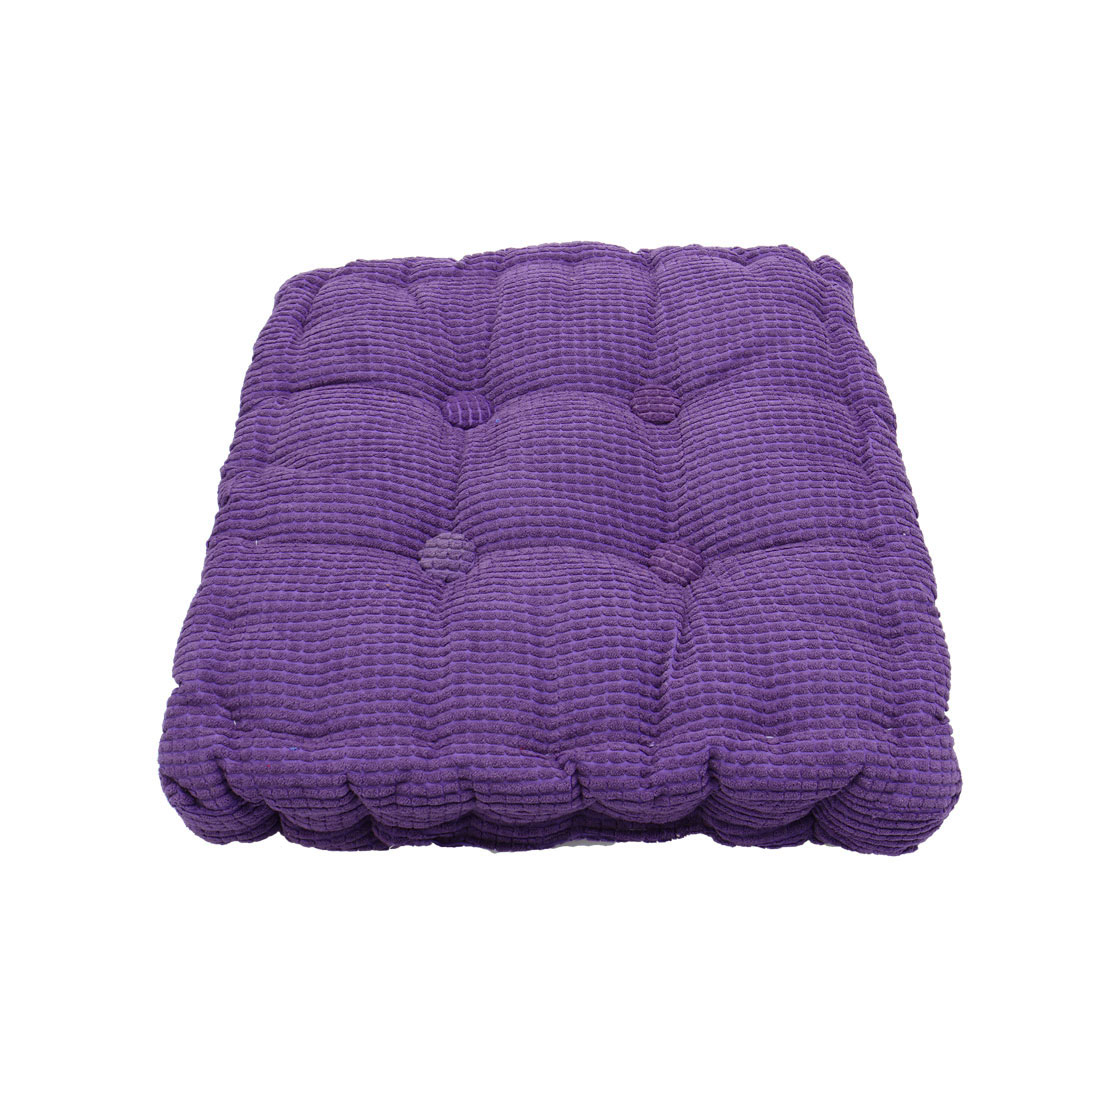 Home Office Corduroy Square Shaped Anti Slip Seat Chair Cushion Pad Cover Purple